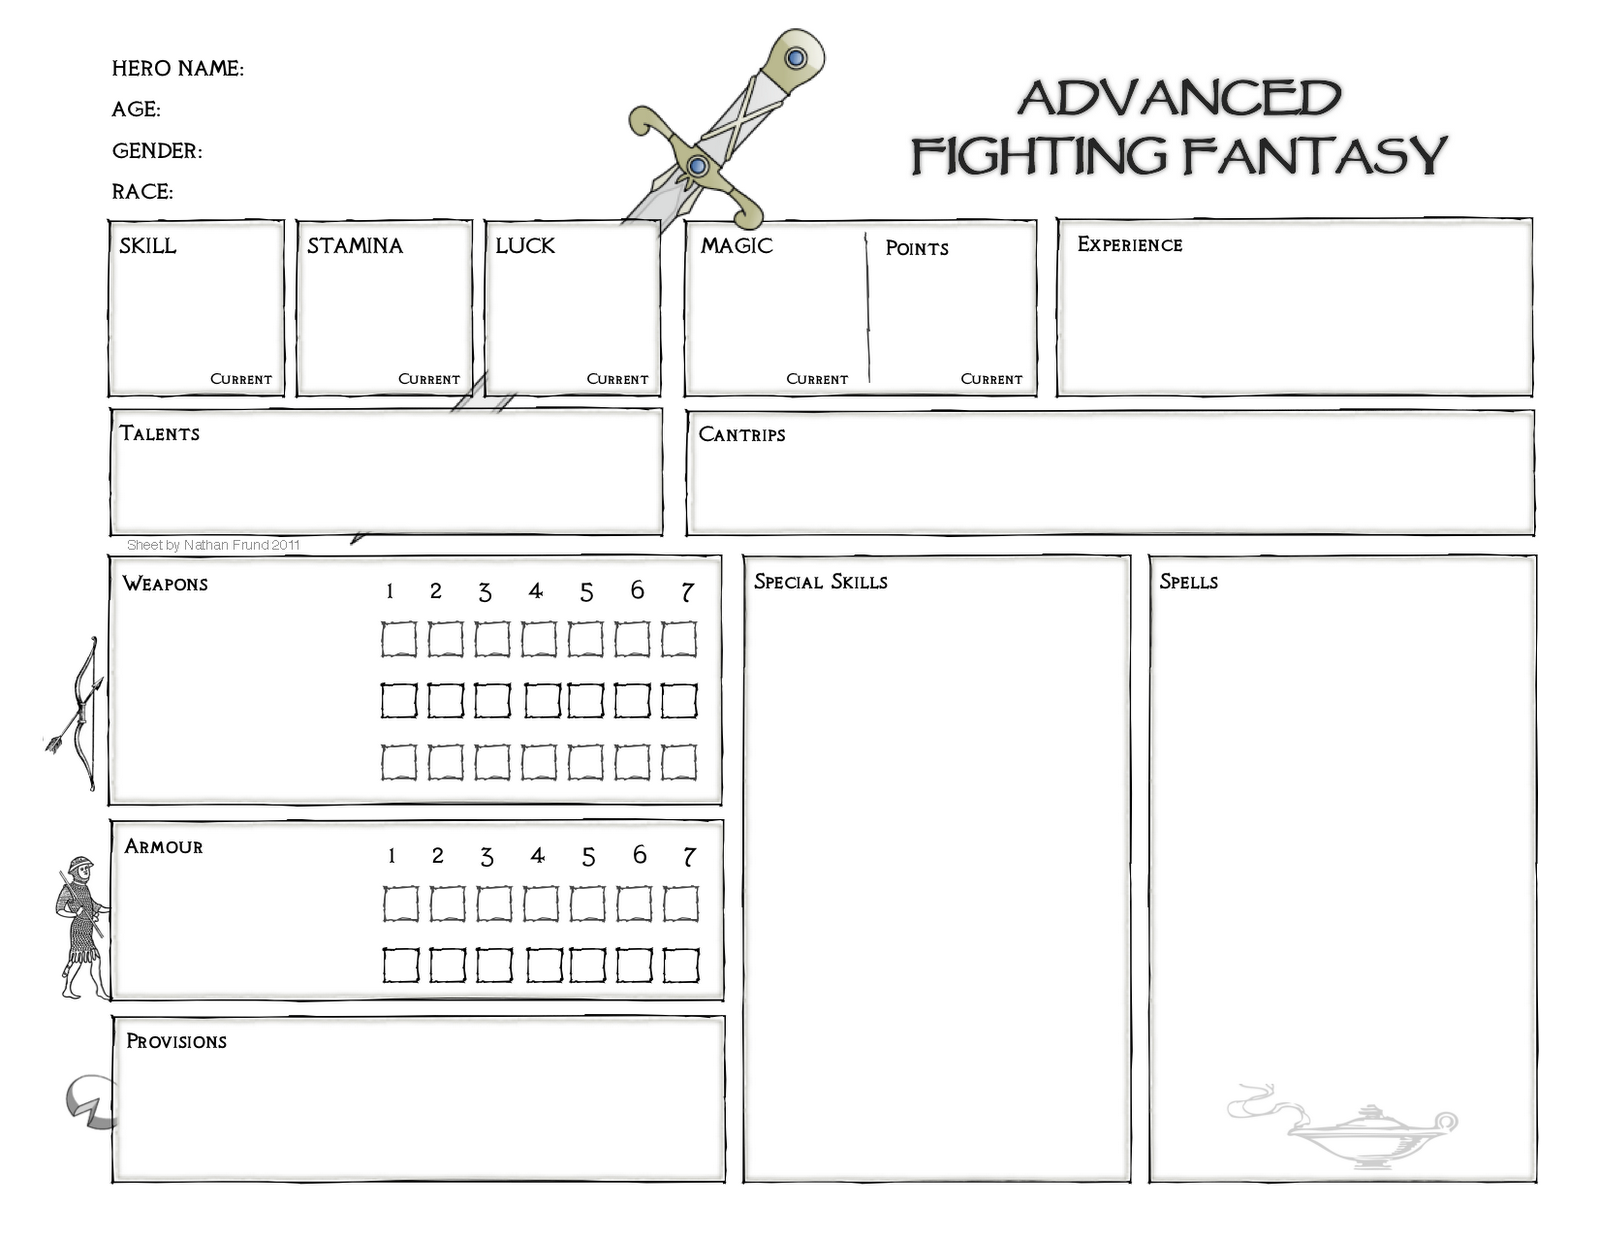 Fantasy Character Design Sheet : Advanced fighting fantasy character sheet platonic solid